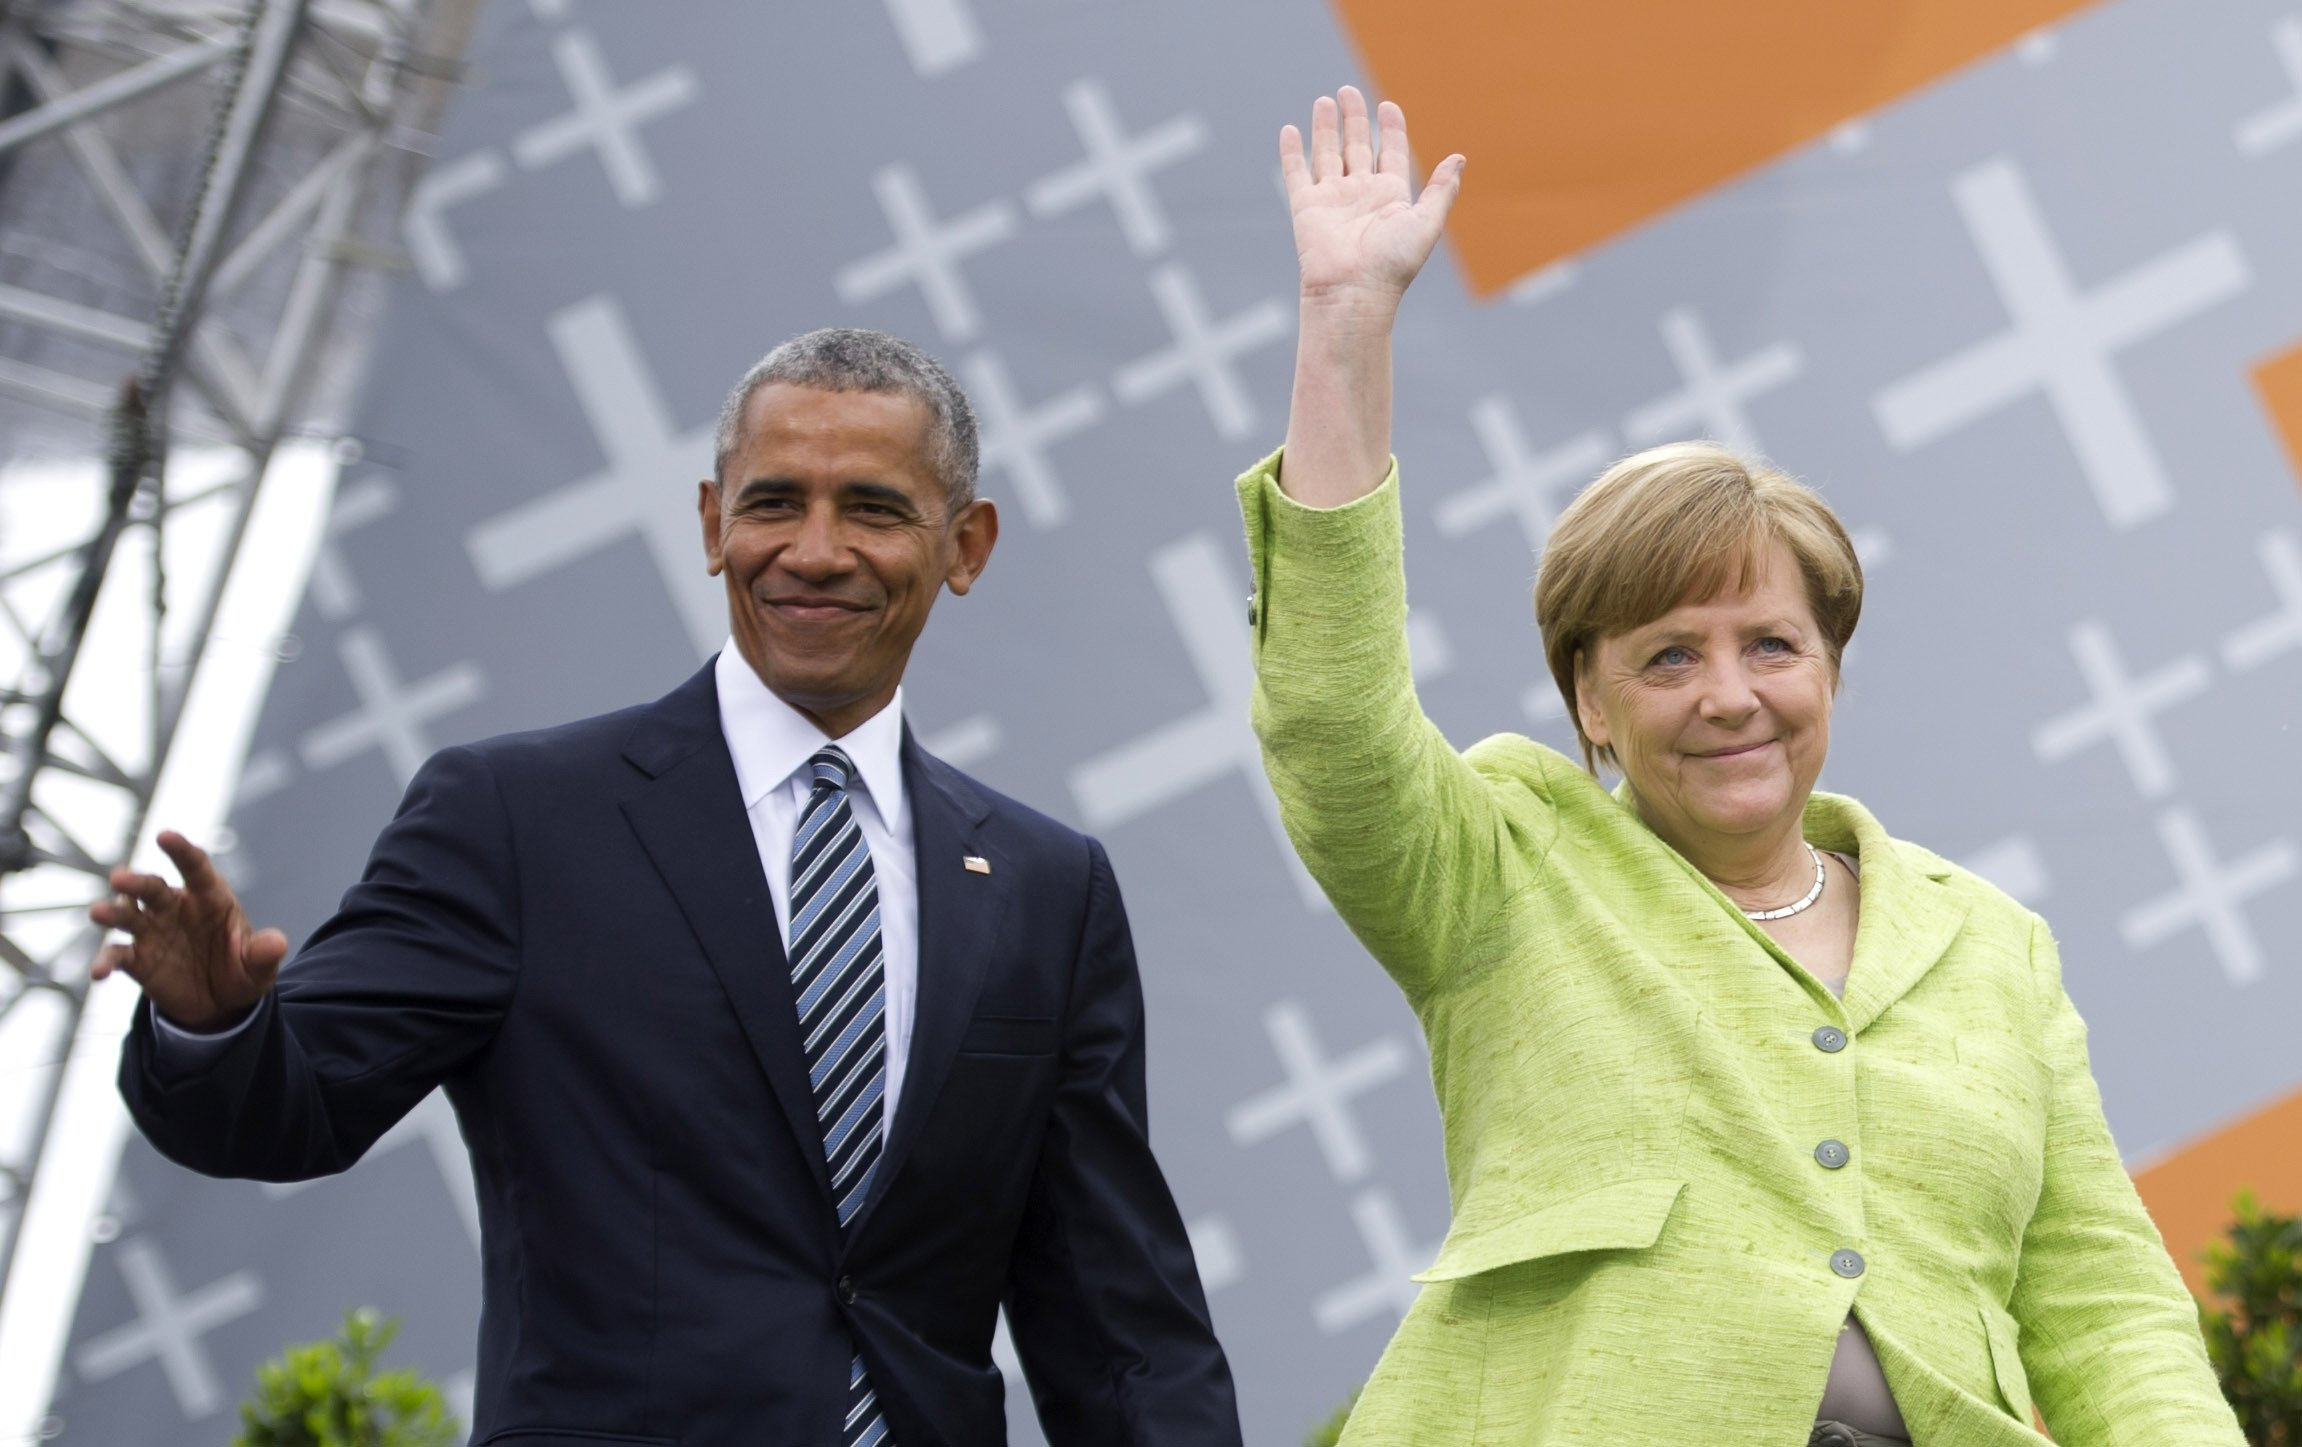 German Chancellor Angela Merkel and former U.S. President Barack Obama arrive for a discussion on democracy at Church Congress in Berlin, Germany, May 25, 2017. (Getty Images Photo)